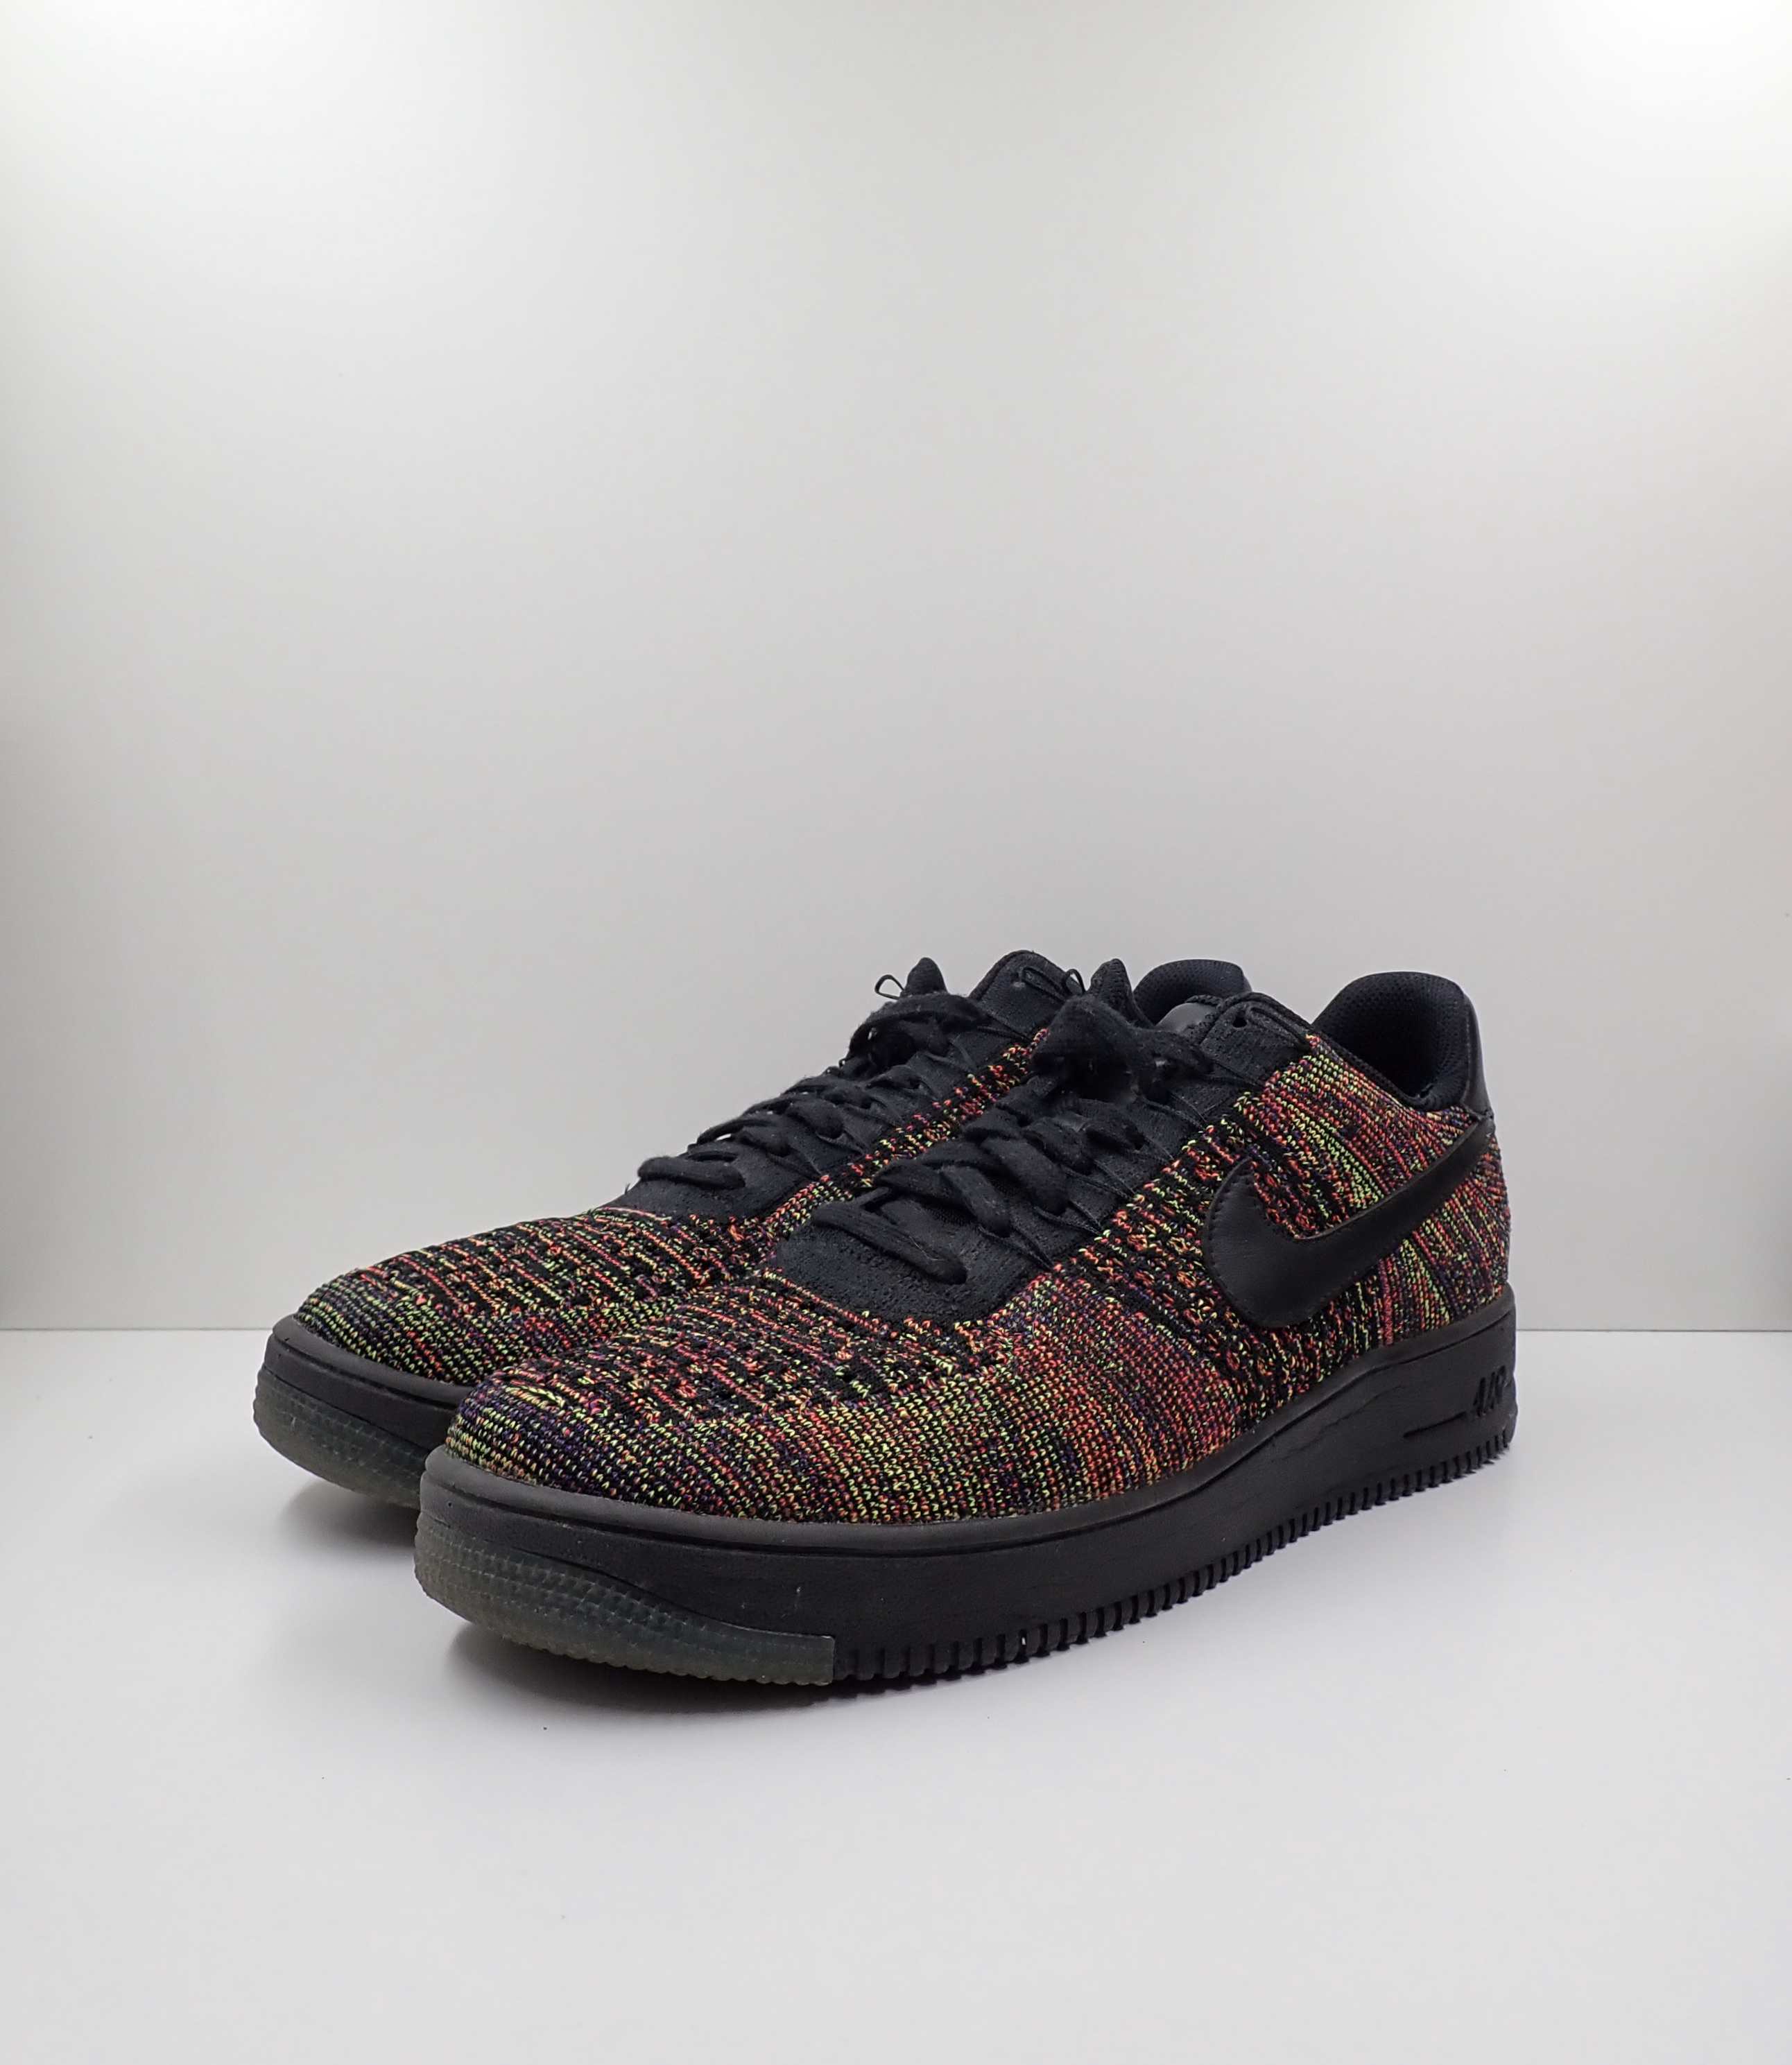 Nike Air Force 1 Low Flyknit Black Multi Color